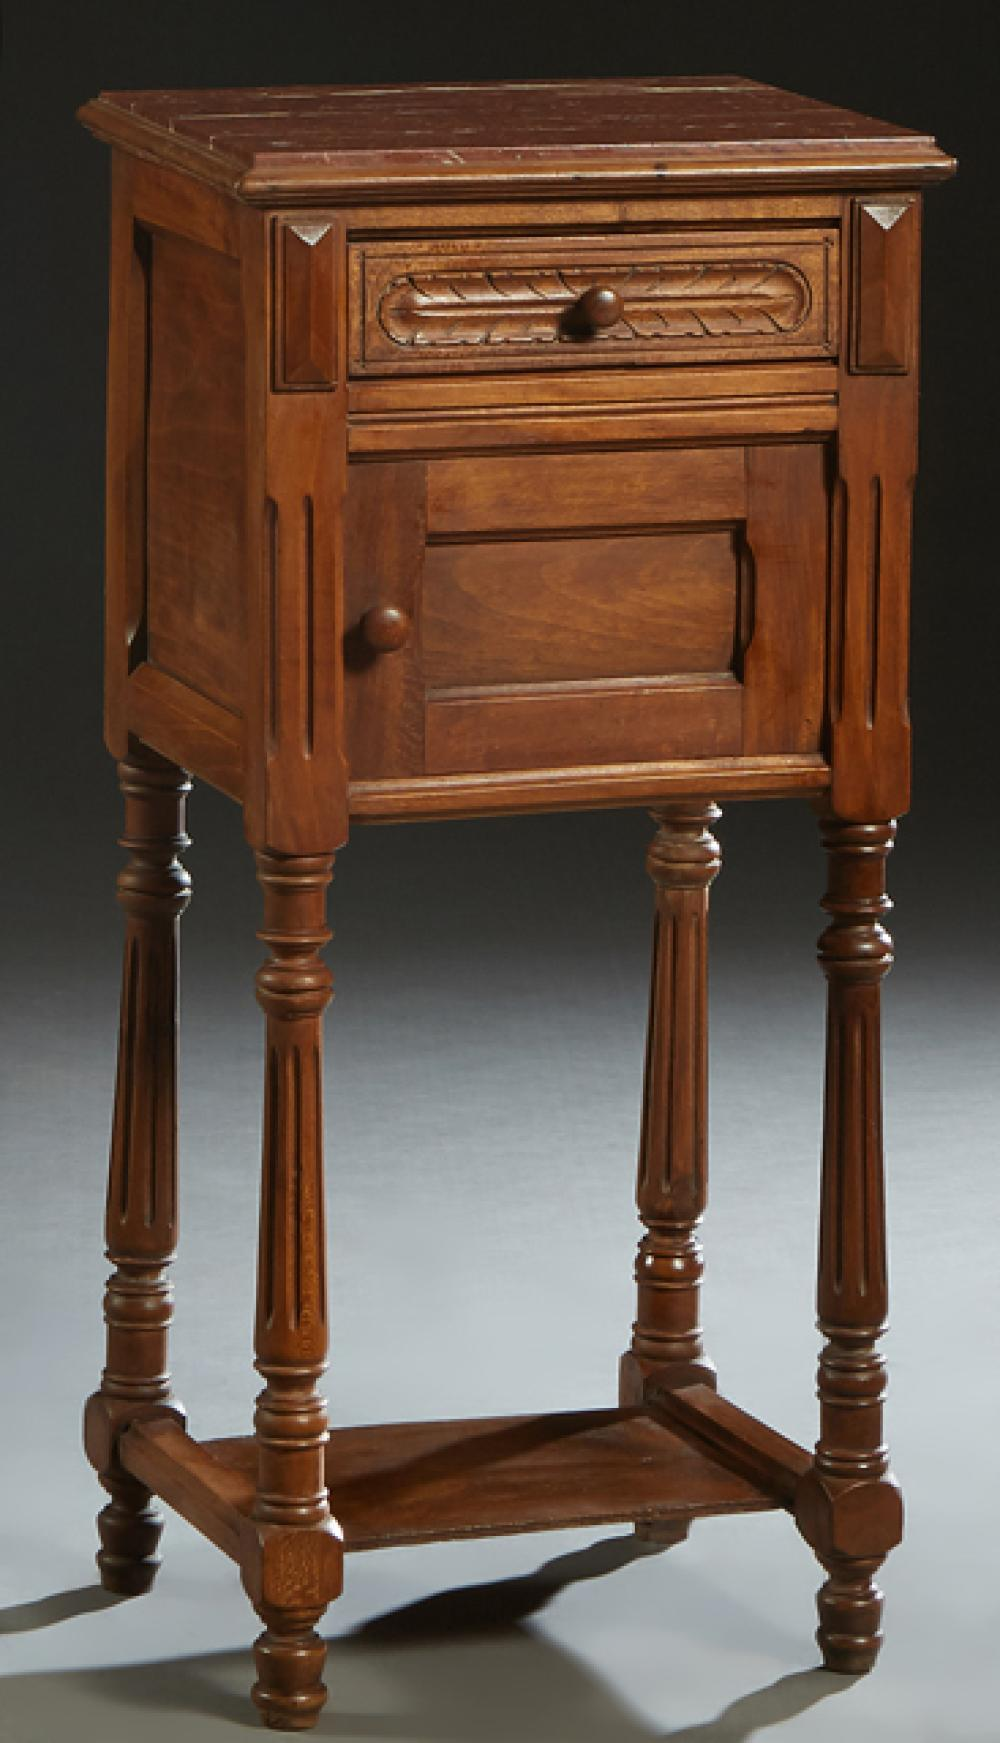 French Henri II Style Carved Walnut Marble Top Nightstand, late 19th c., the inset highly figured rouge marble over a frieze drawer...